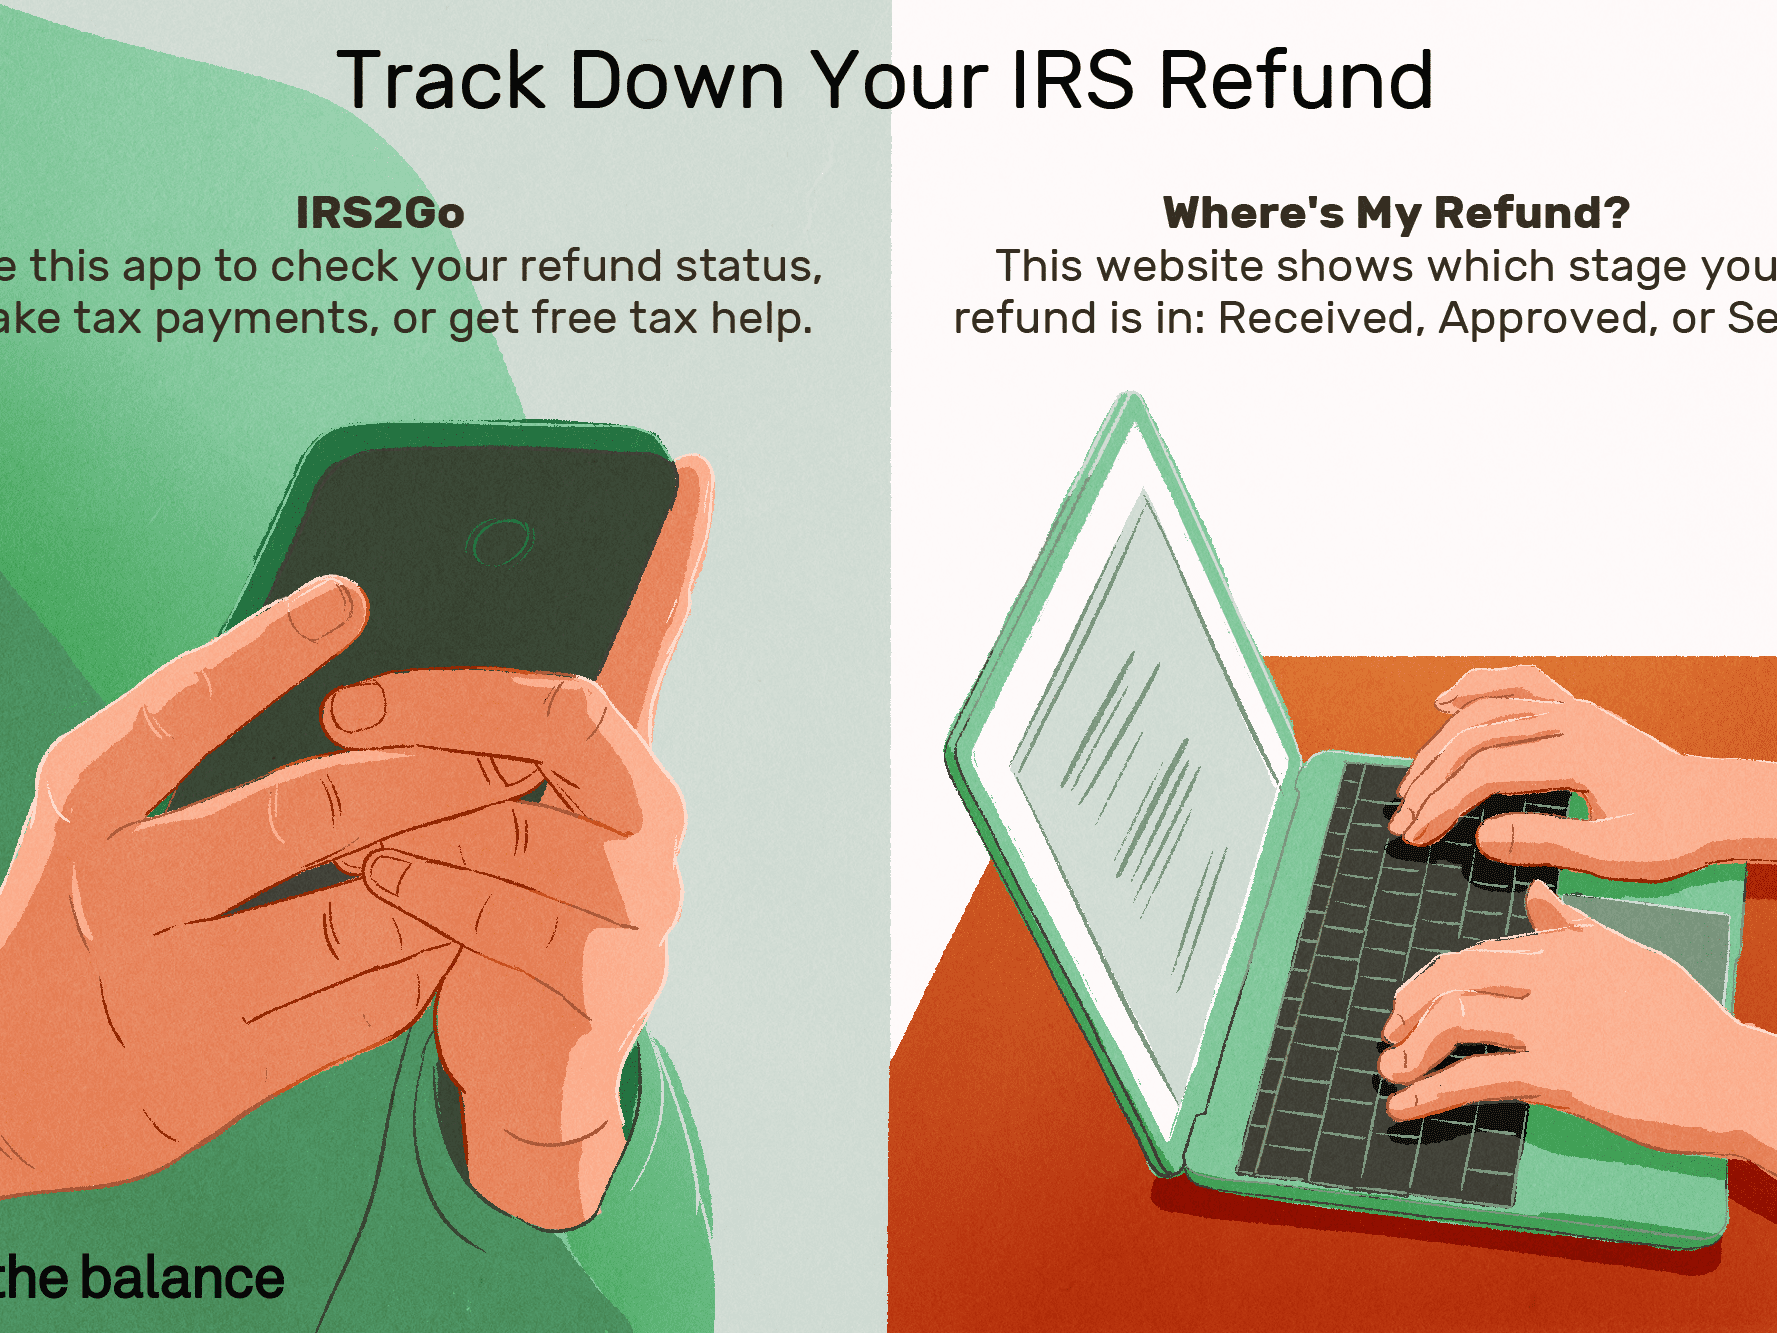 Trace Your Tax Refund Status Online With IRS.gov